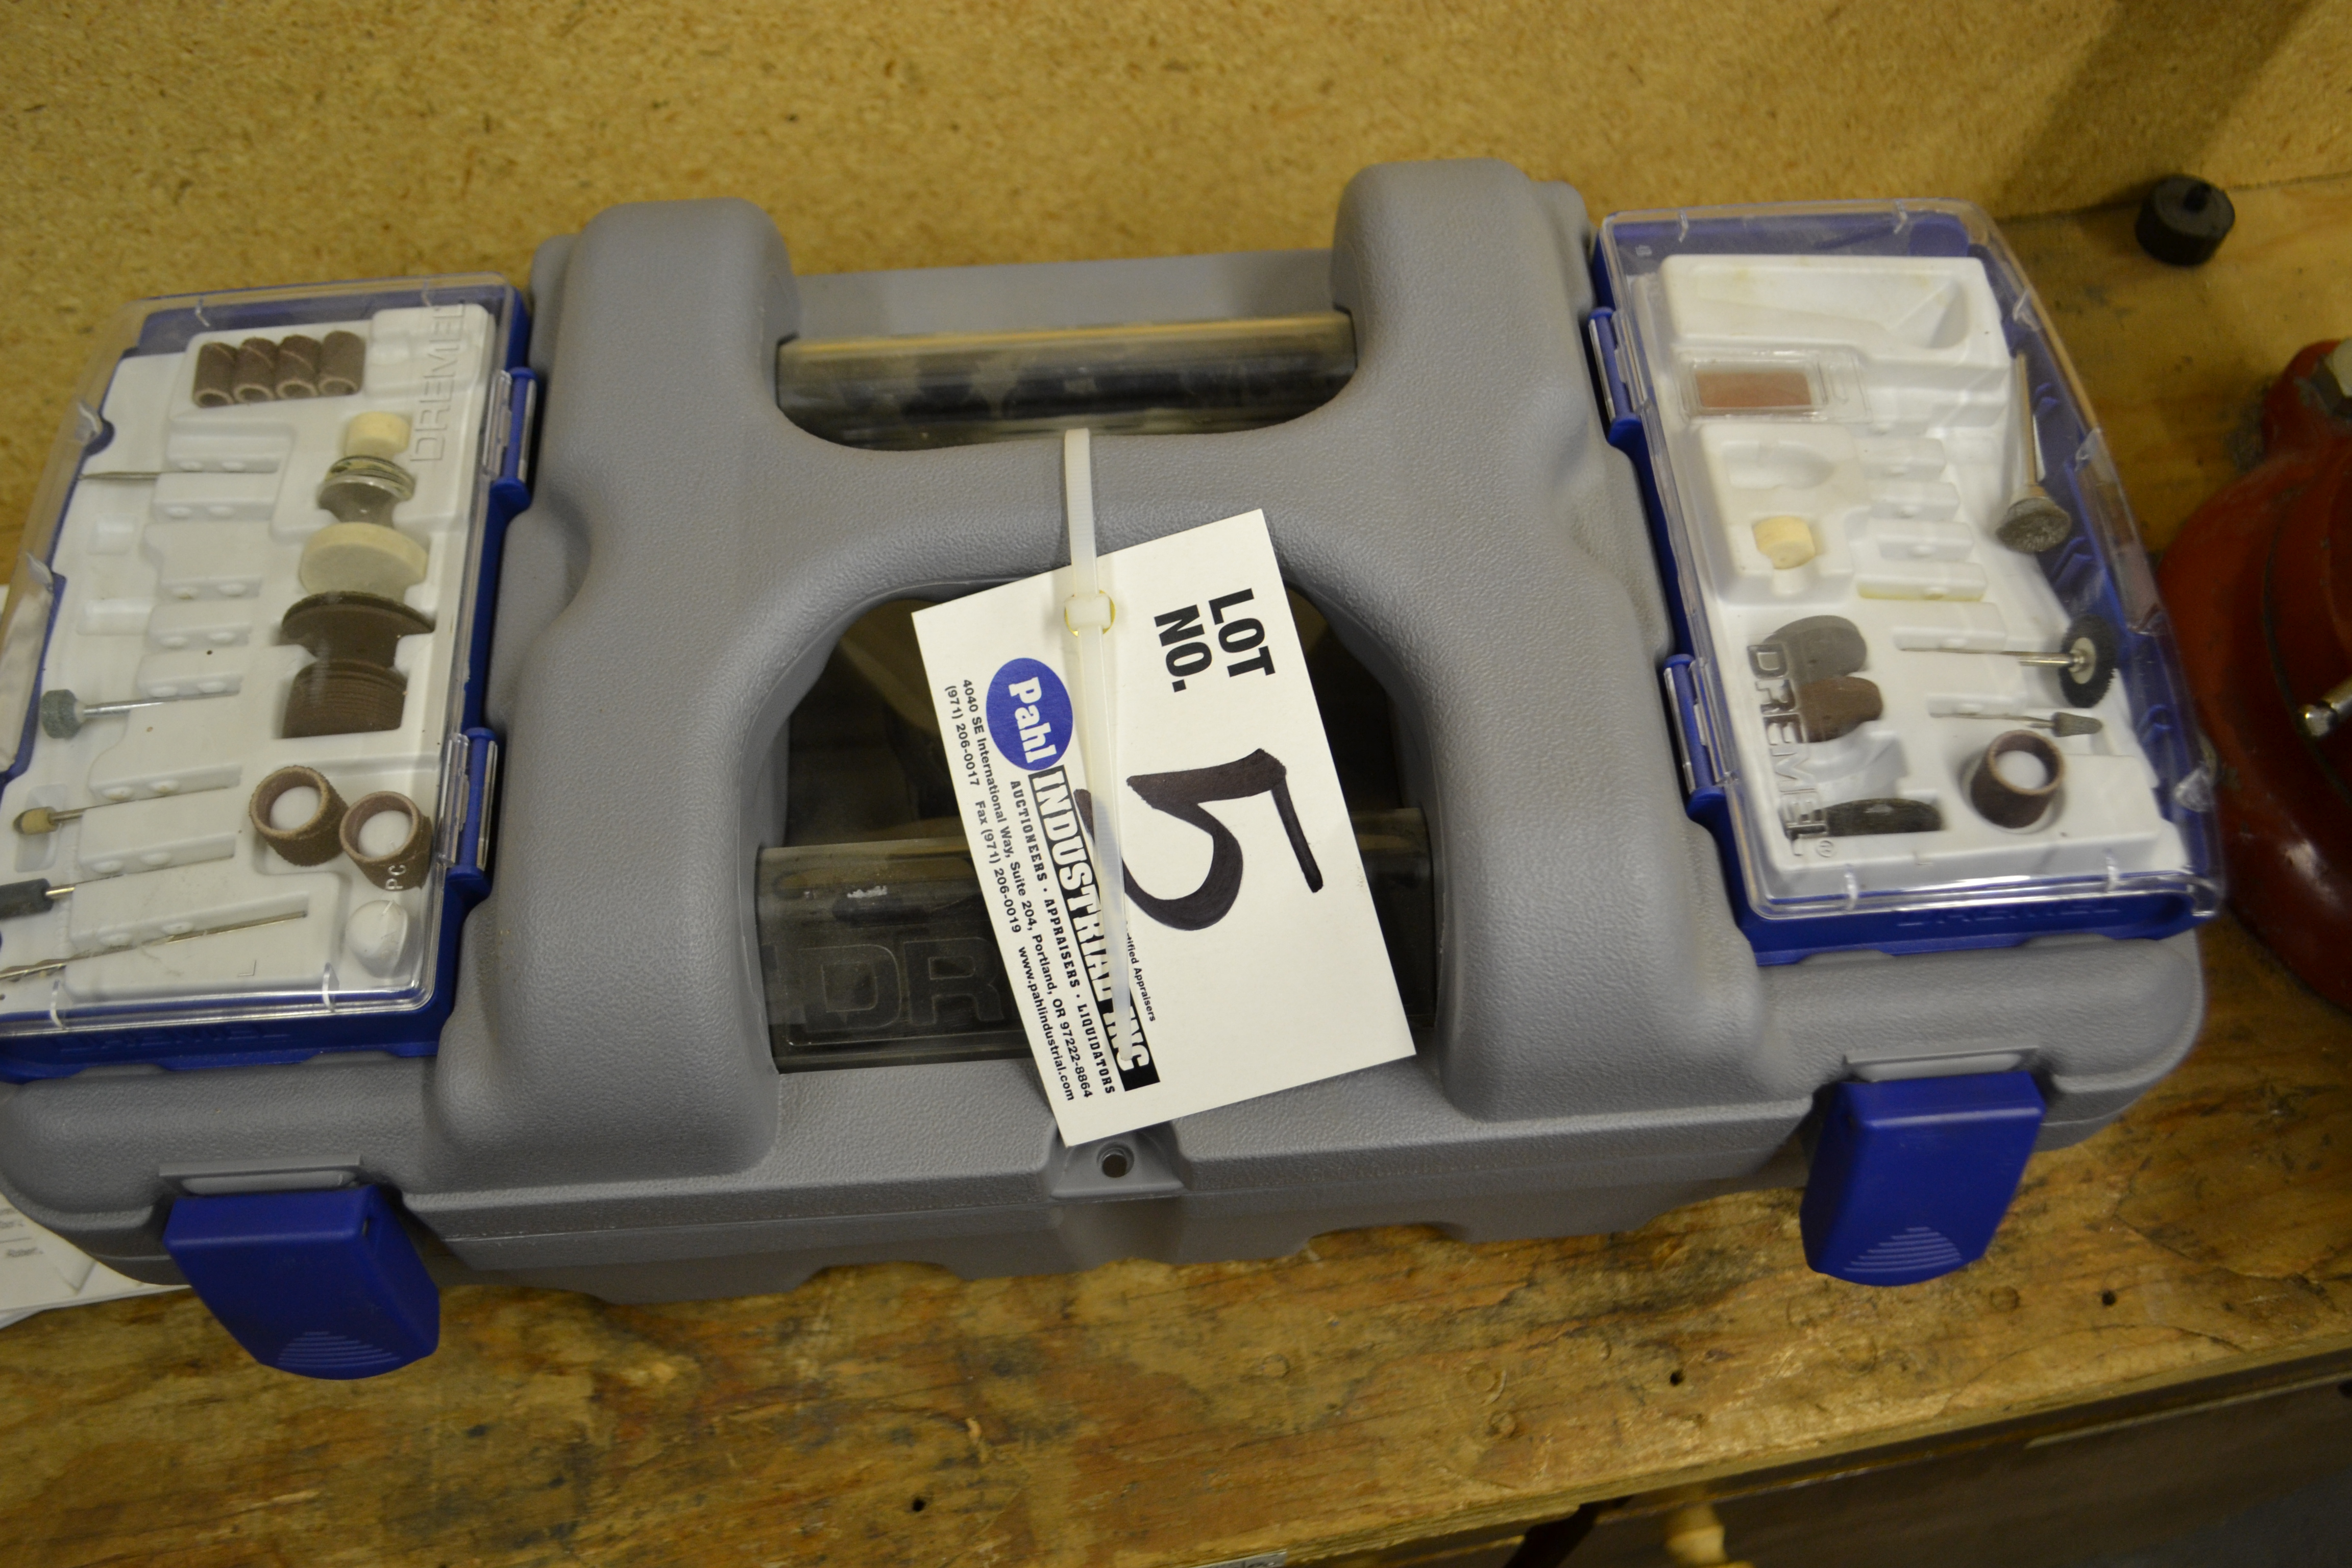 Dremel 400 Series XPR High Performance Rotary Tool c/w Box and Attachments - Image 2 of 2